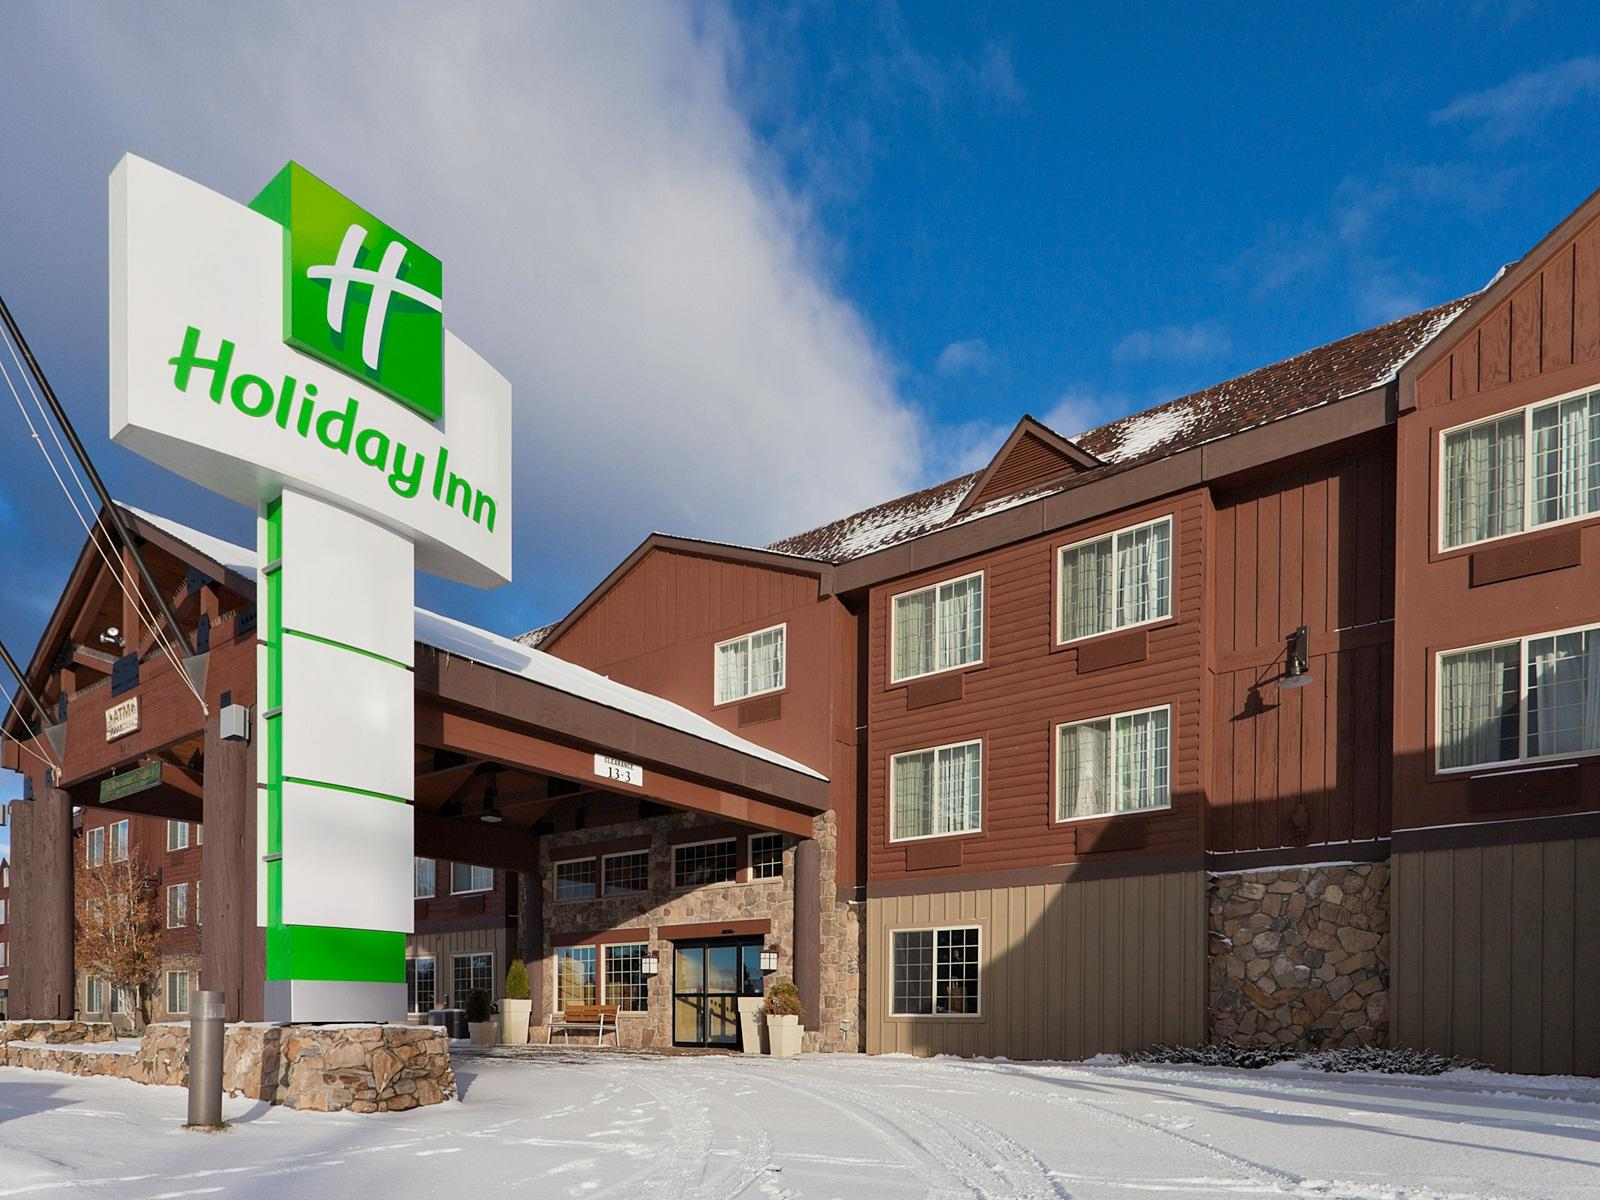 Holiday Inn West Yellowstone